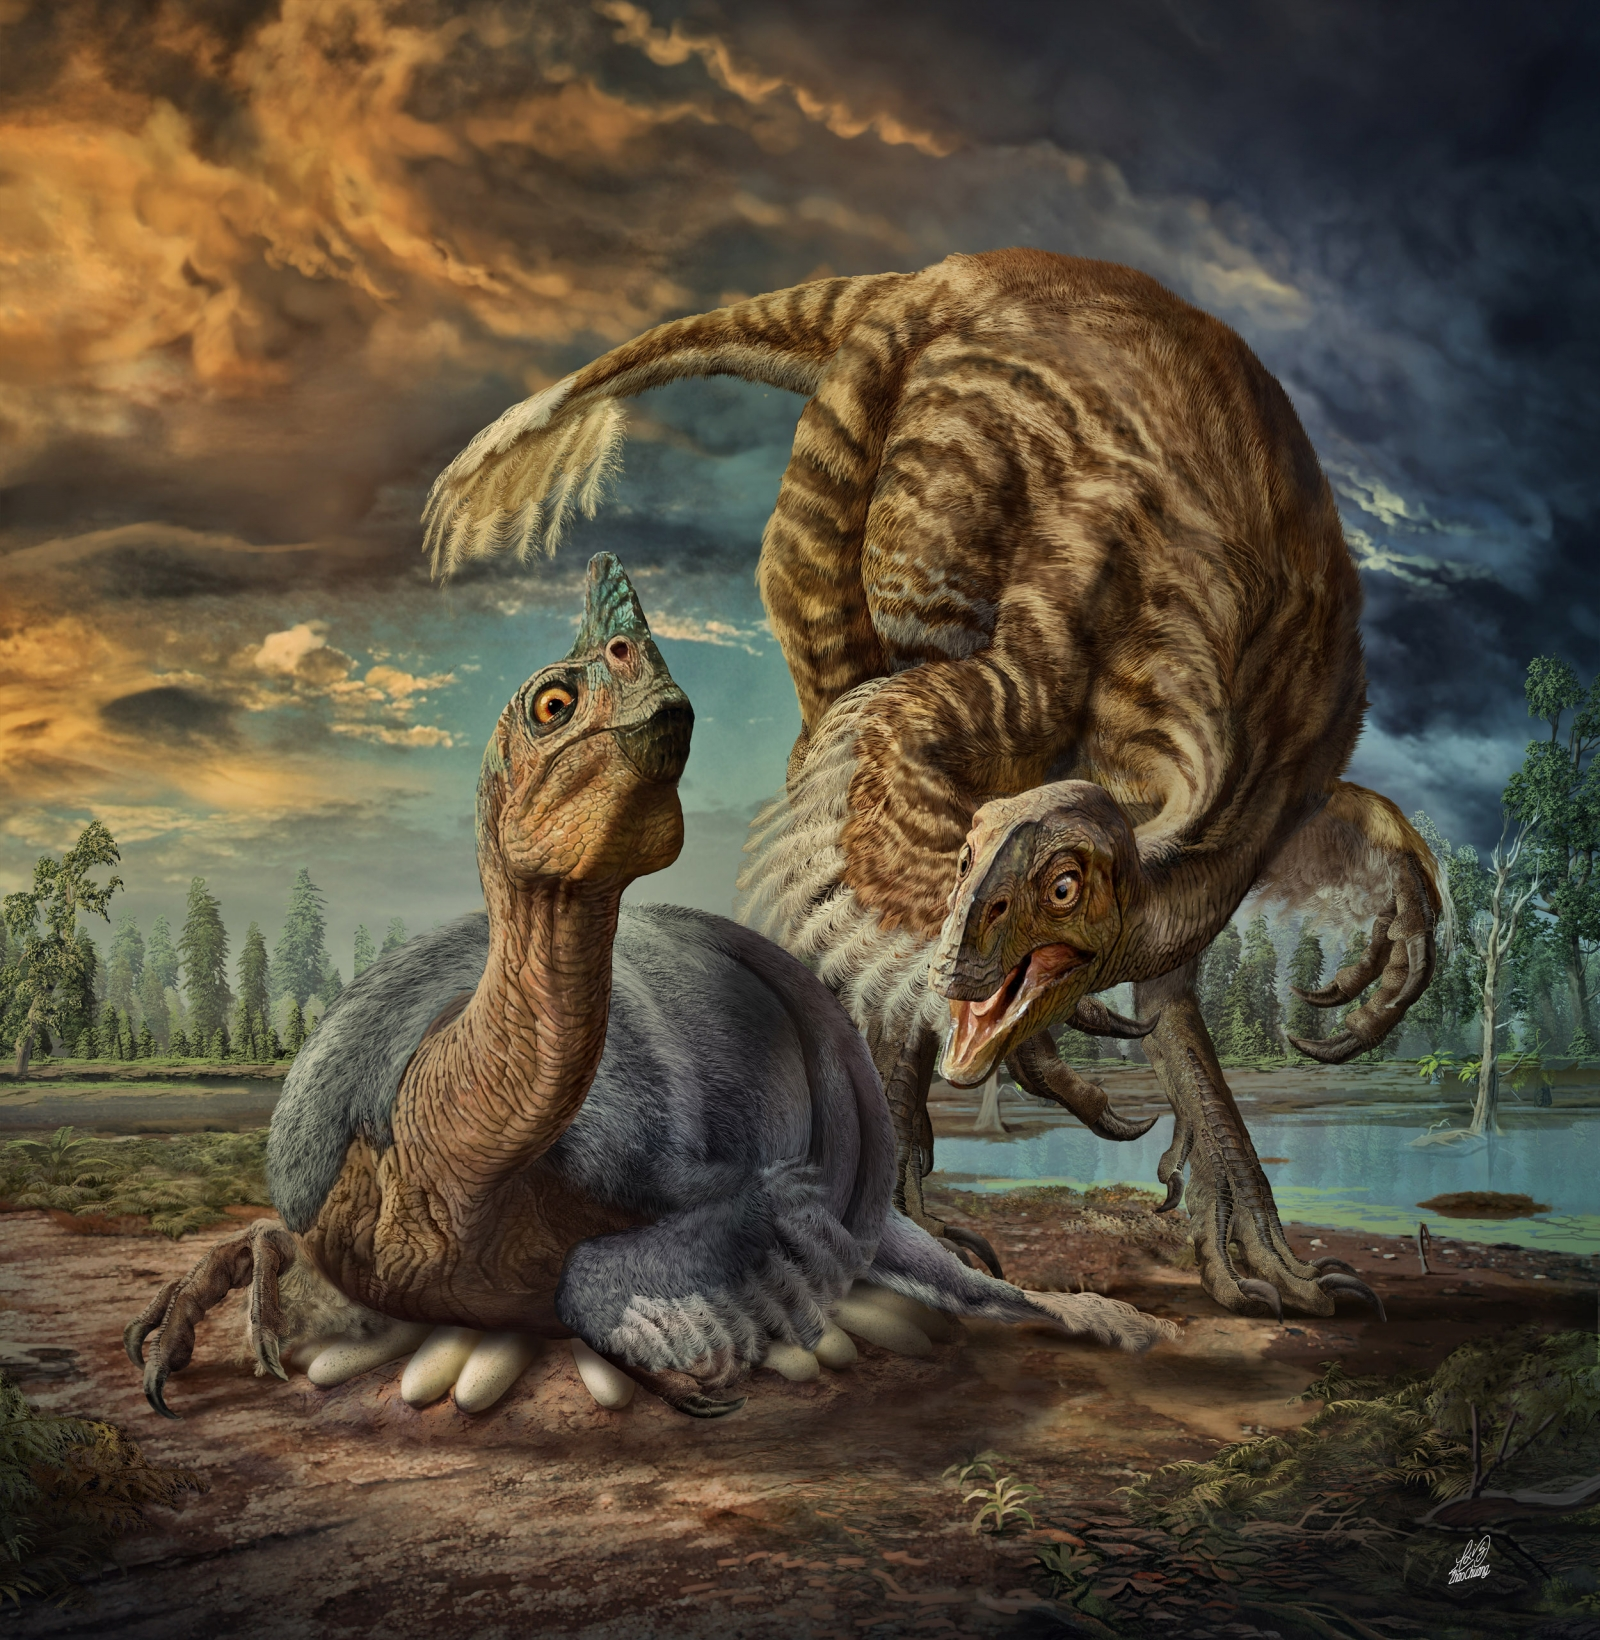 Giant bird-like dinosaur species found in China